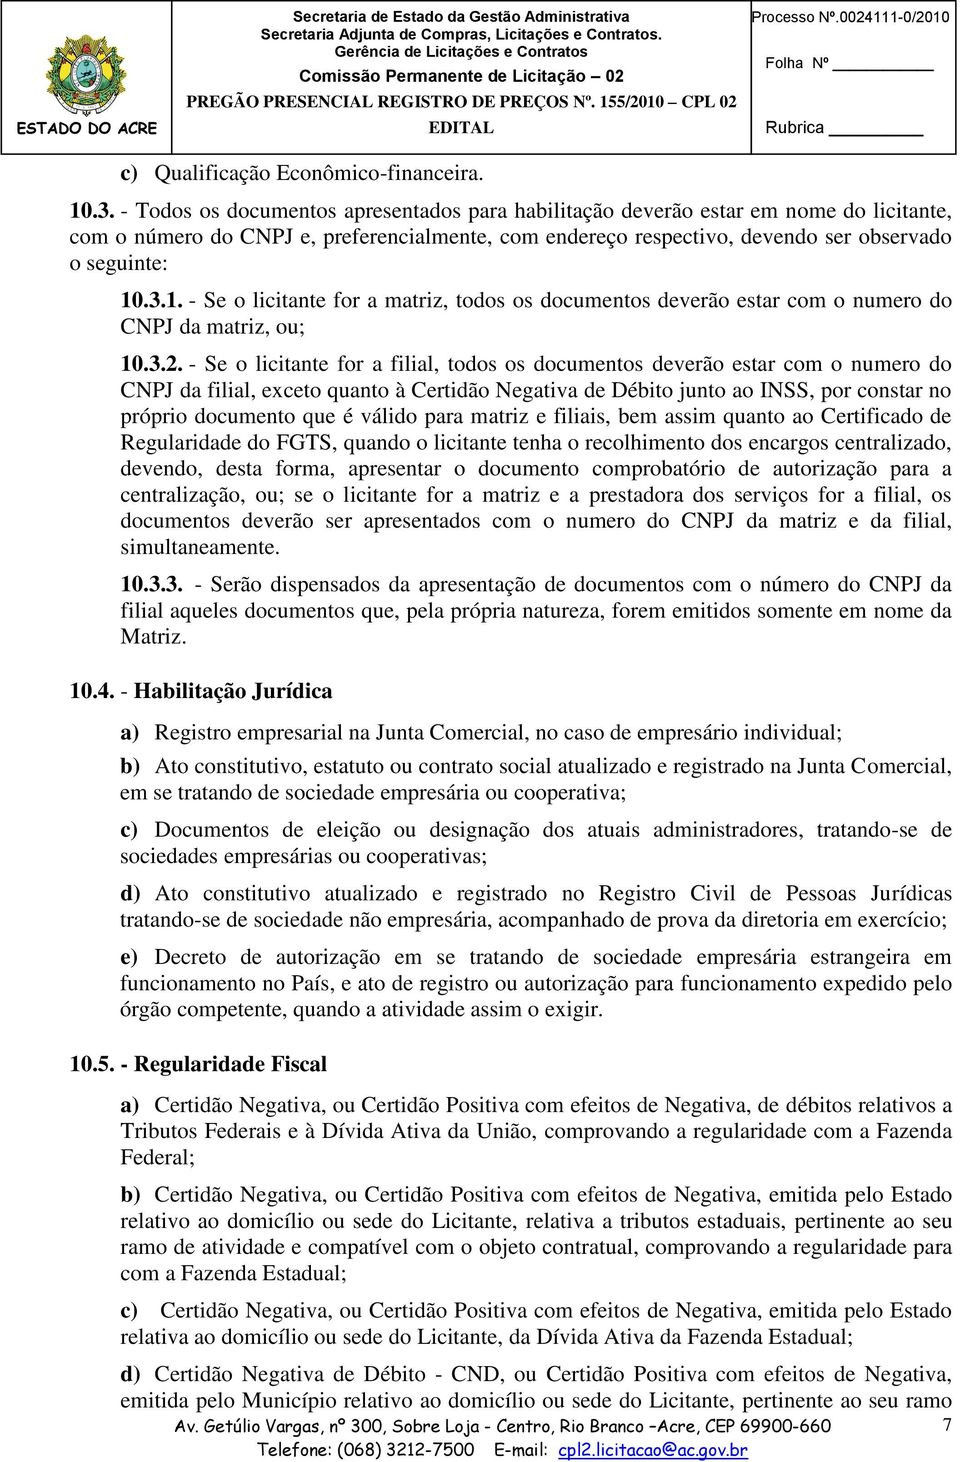 .3.1. - Se o licitante for a matriz, todos os documentos deverão estar com o numero do CNPJ da matriz, ou; 10.3.2.